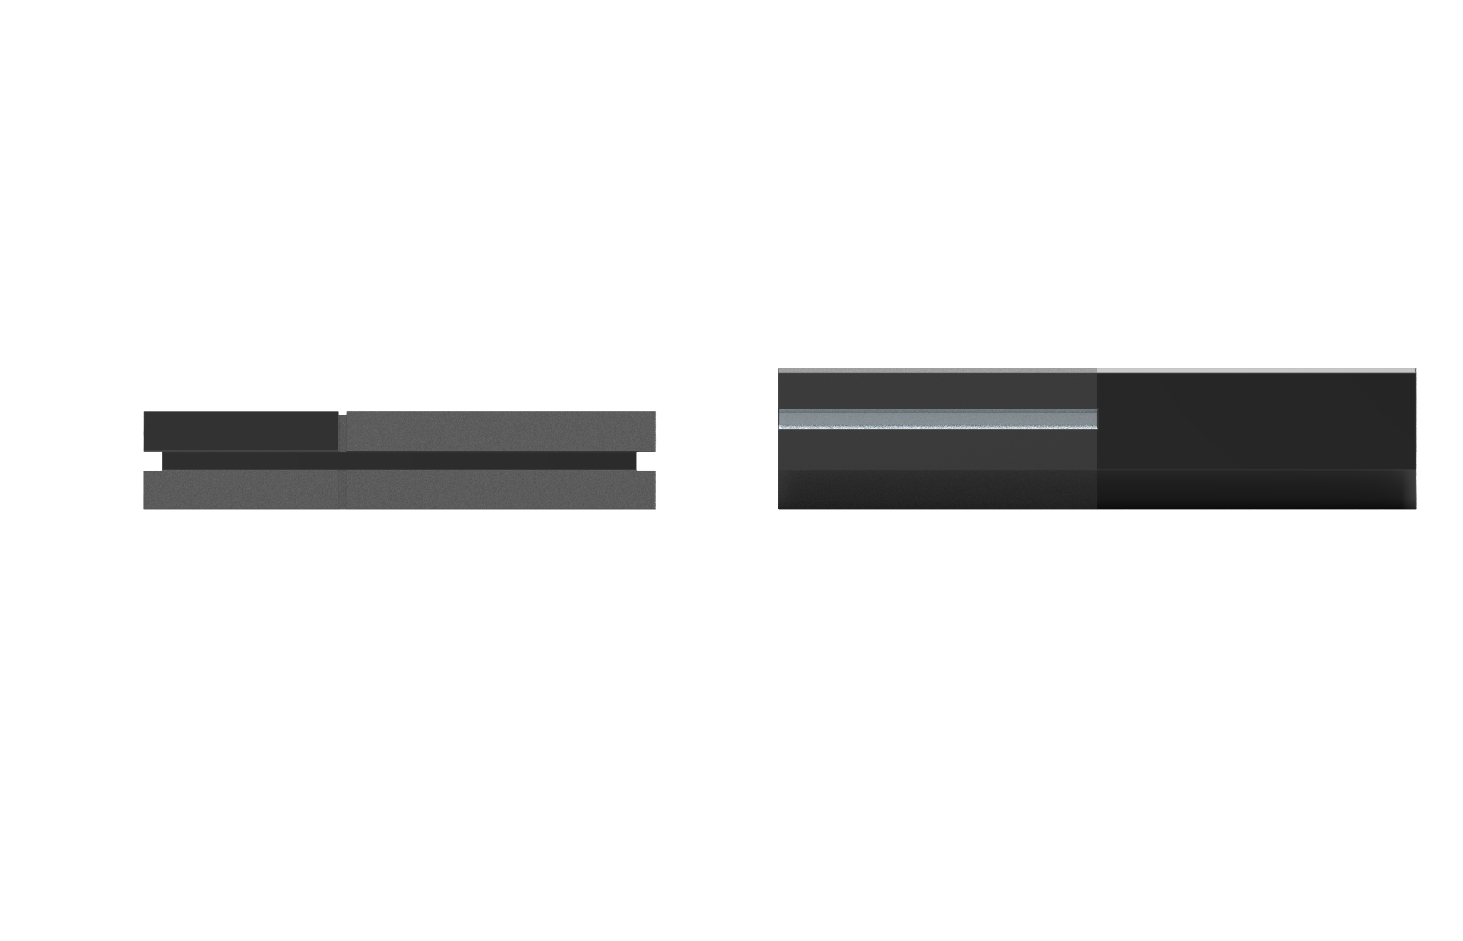 PLAYSTATION 4 vs XBOX ONE - Console Size and Camera ... |Ps4 Vs Xbox One Size